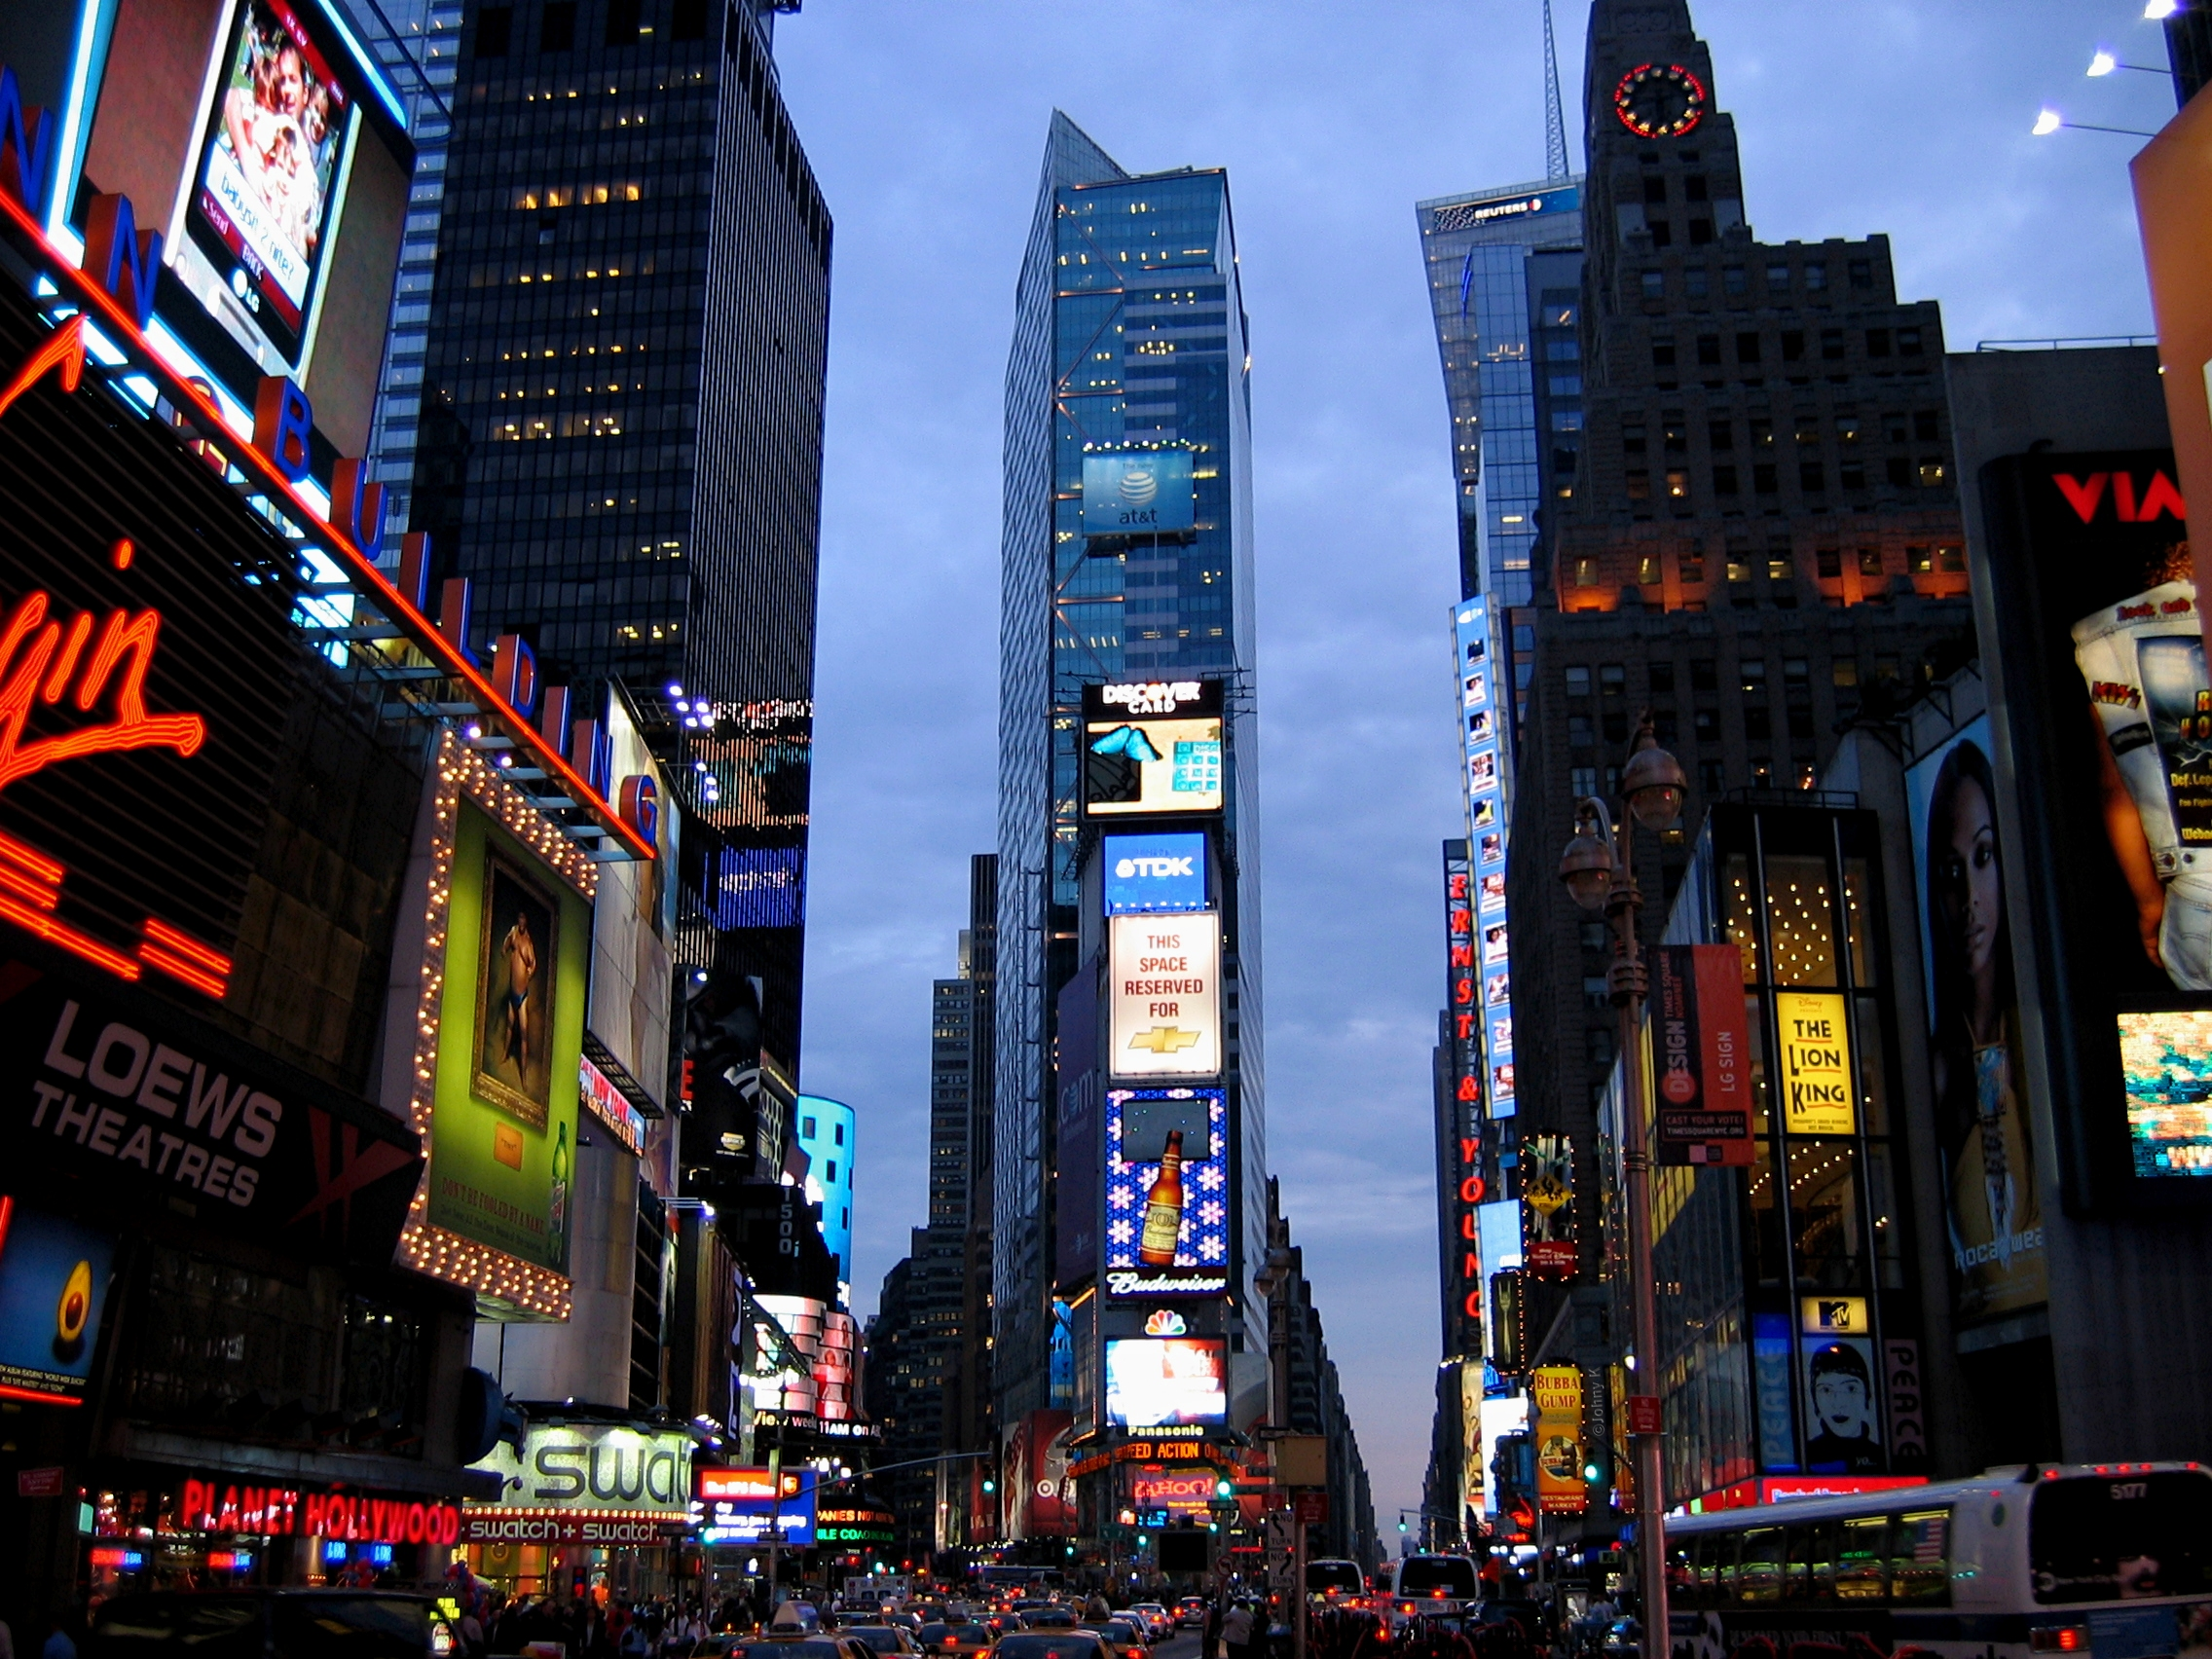 Times square new york at dusk